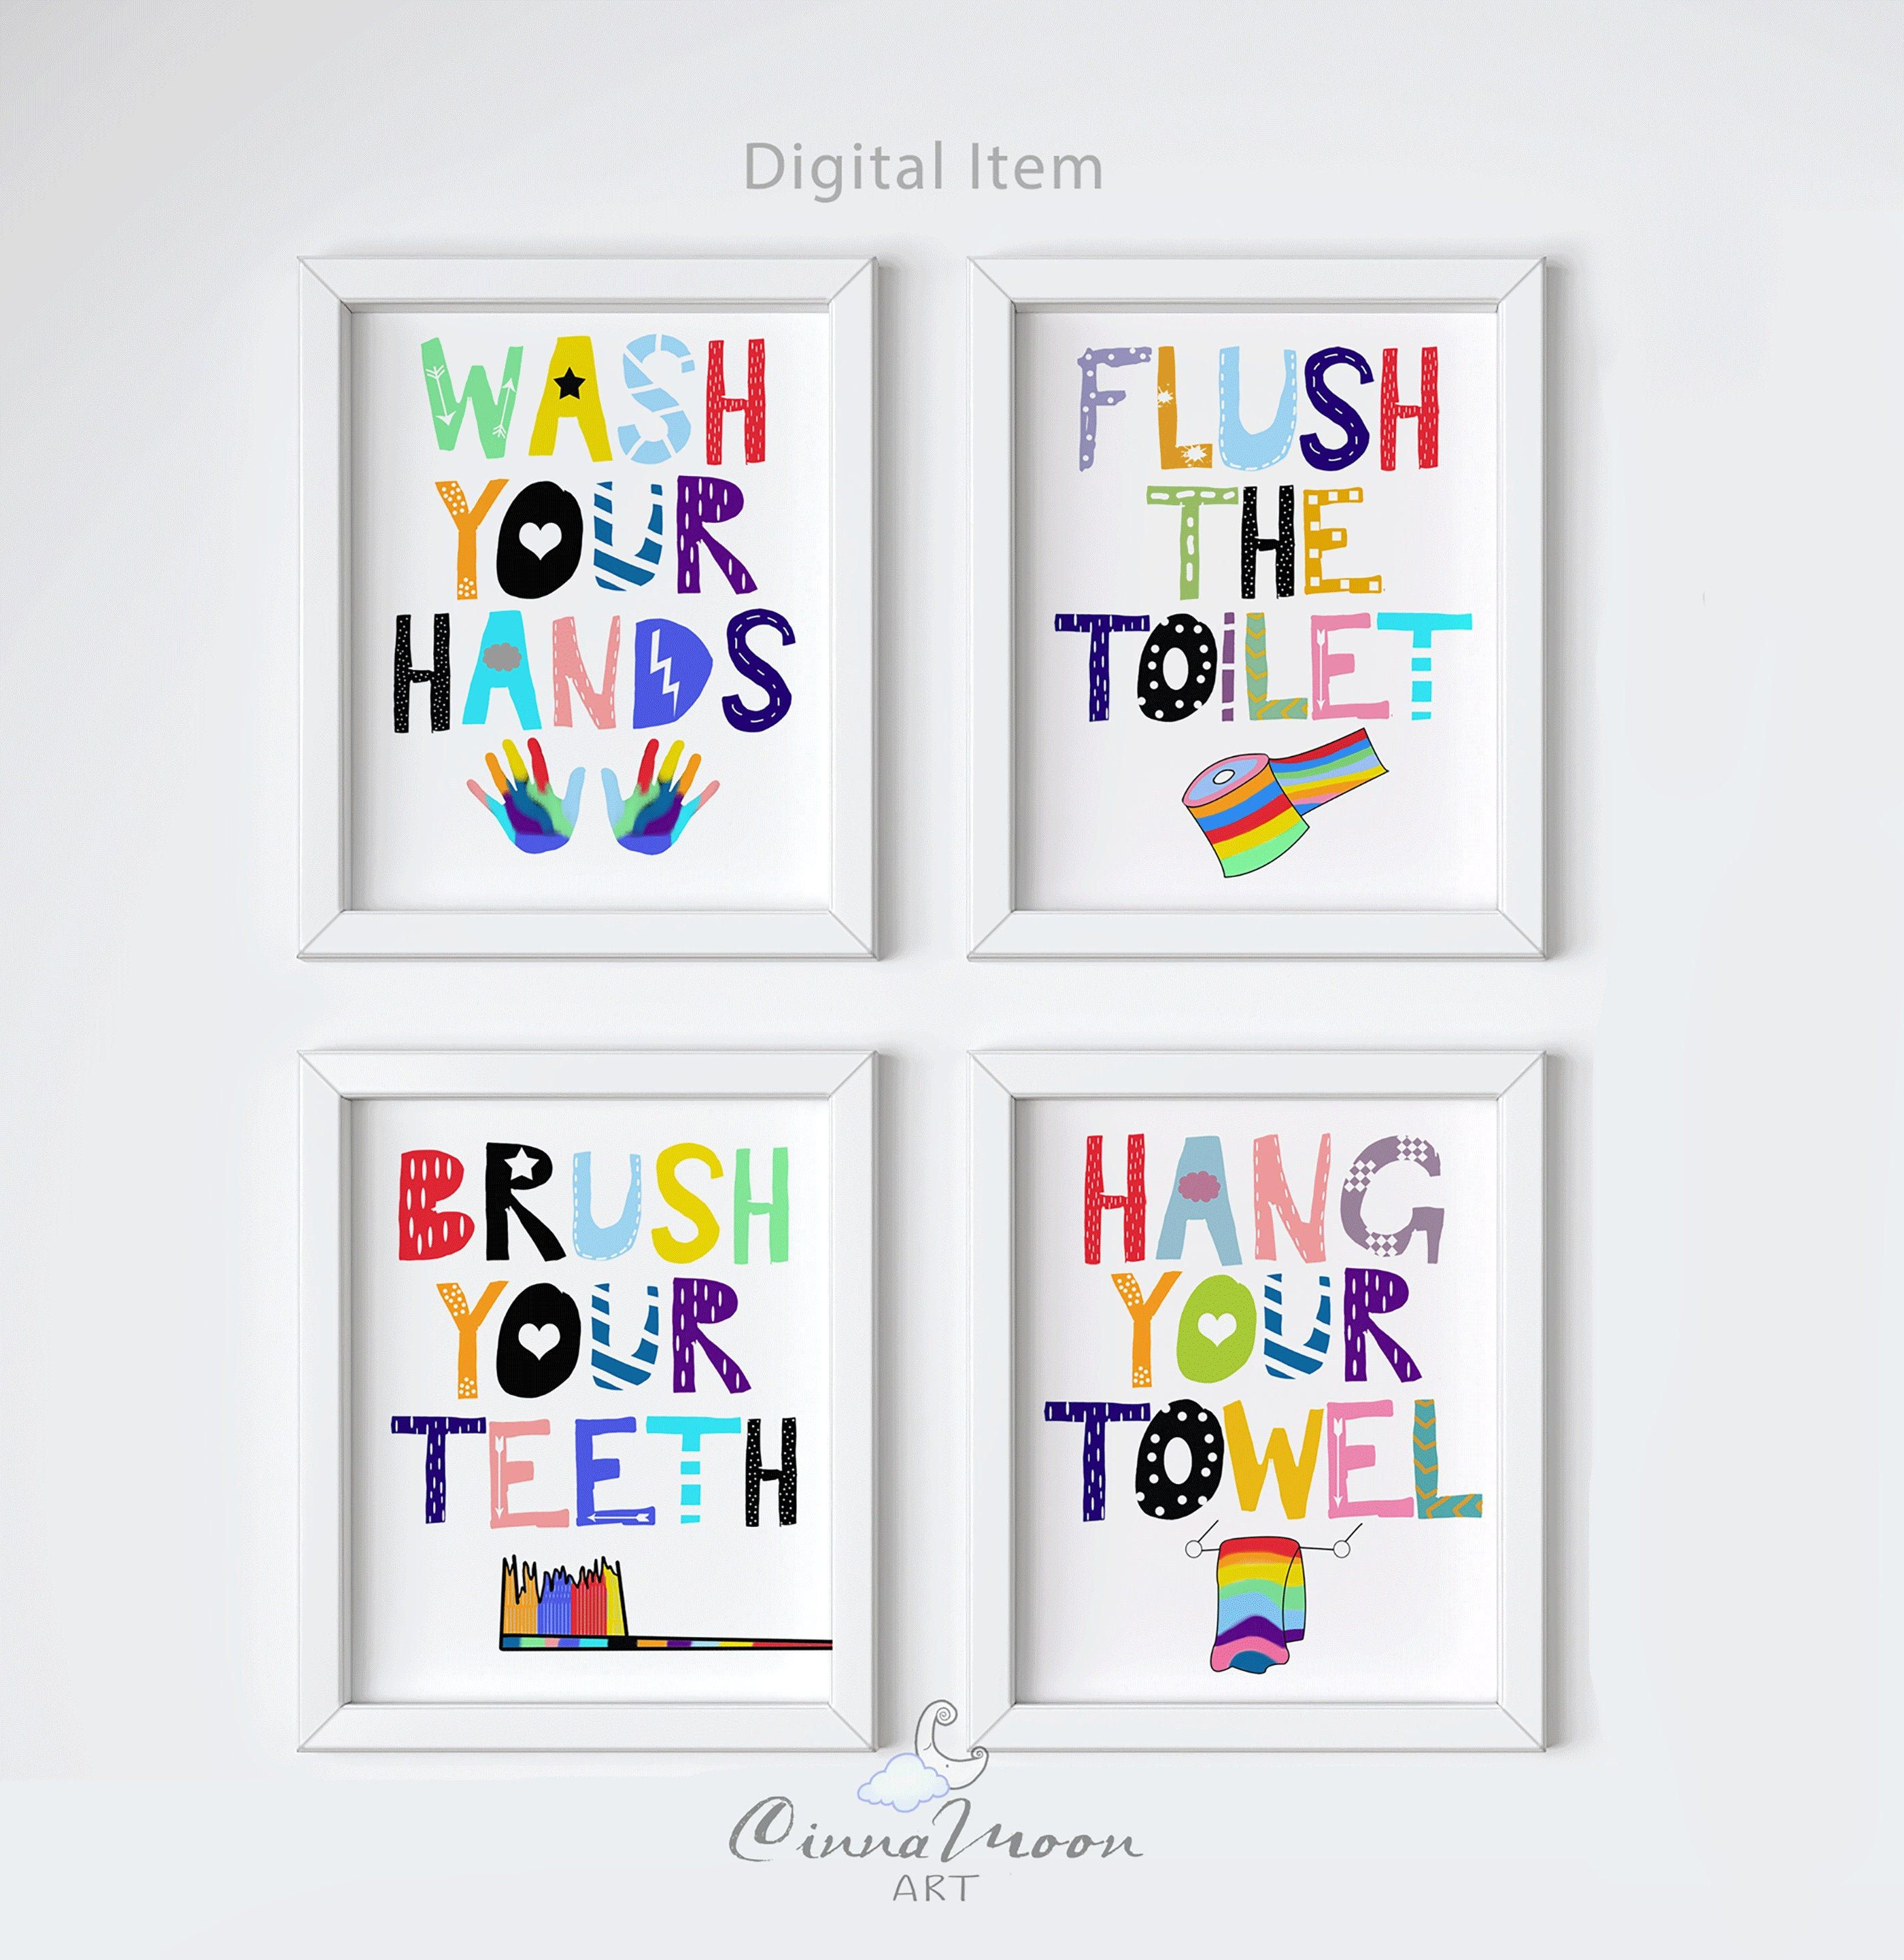 Brush Your Teeth Wash Your Hands Kids Bathroom Prints Kids Etsy In 2020 Kids Bathroom Print Kids Bathroom Wall Art Kids Bathroom Wall